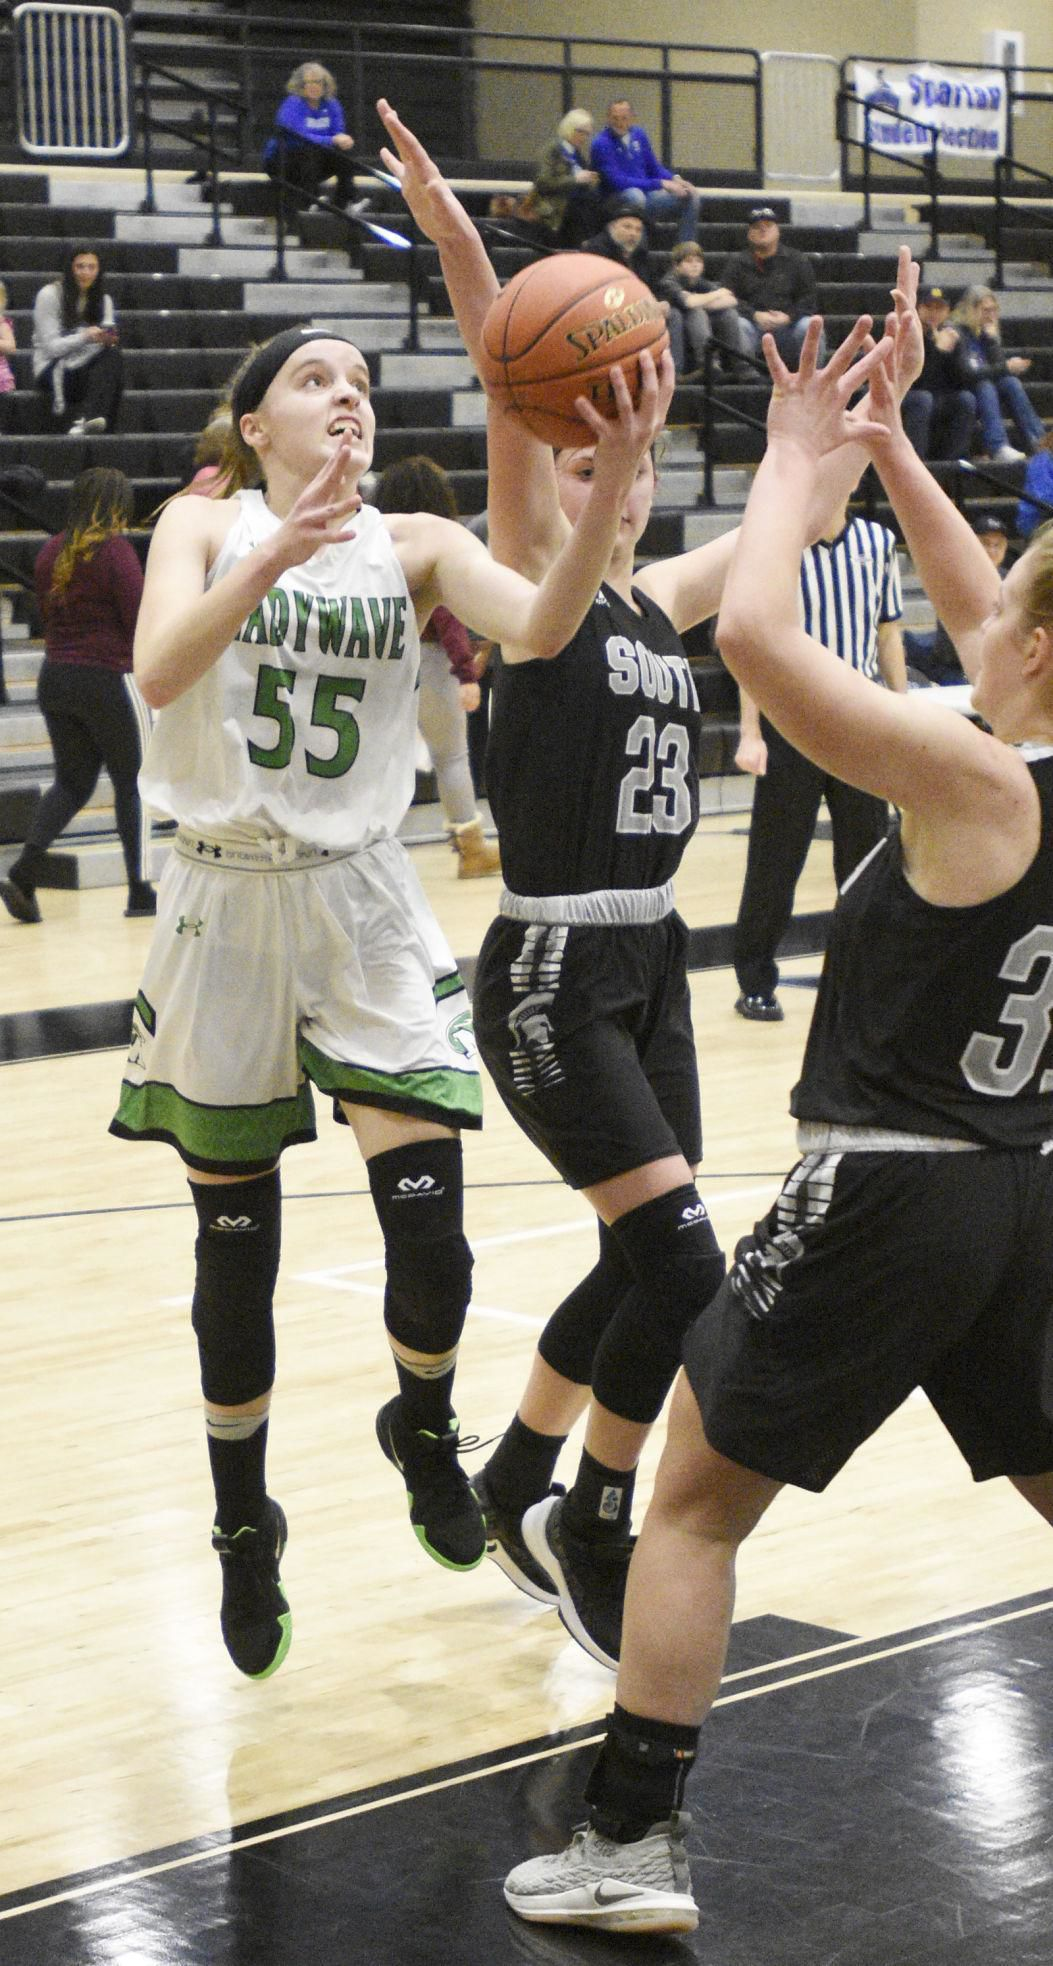 ORDER ON THE COURT: Meade County Girls: 'We have a good core group'